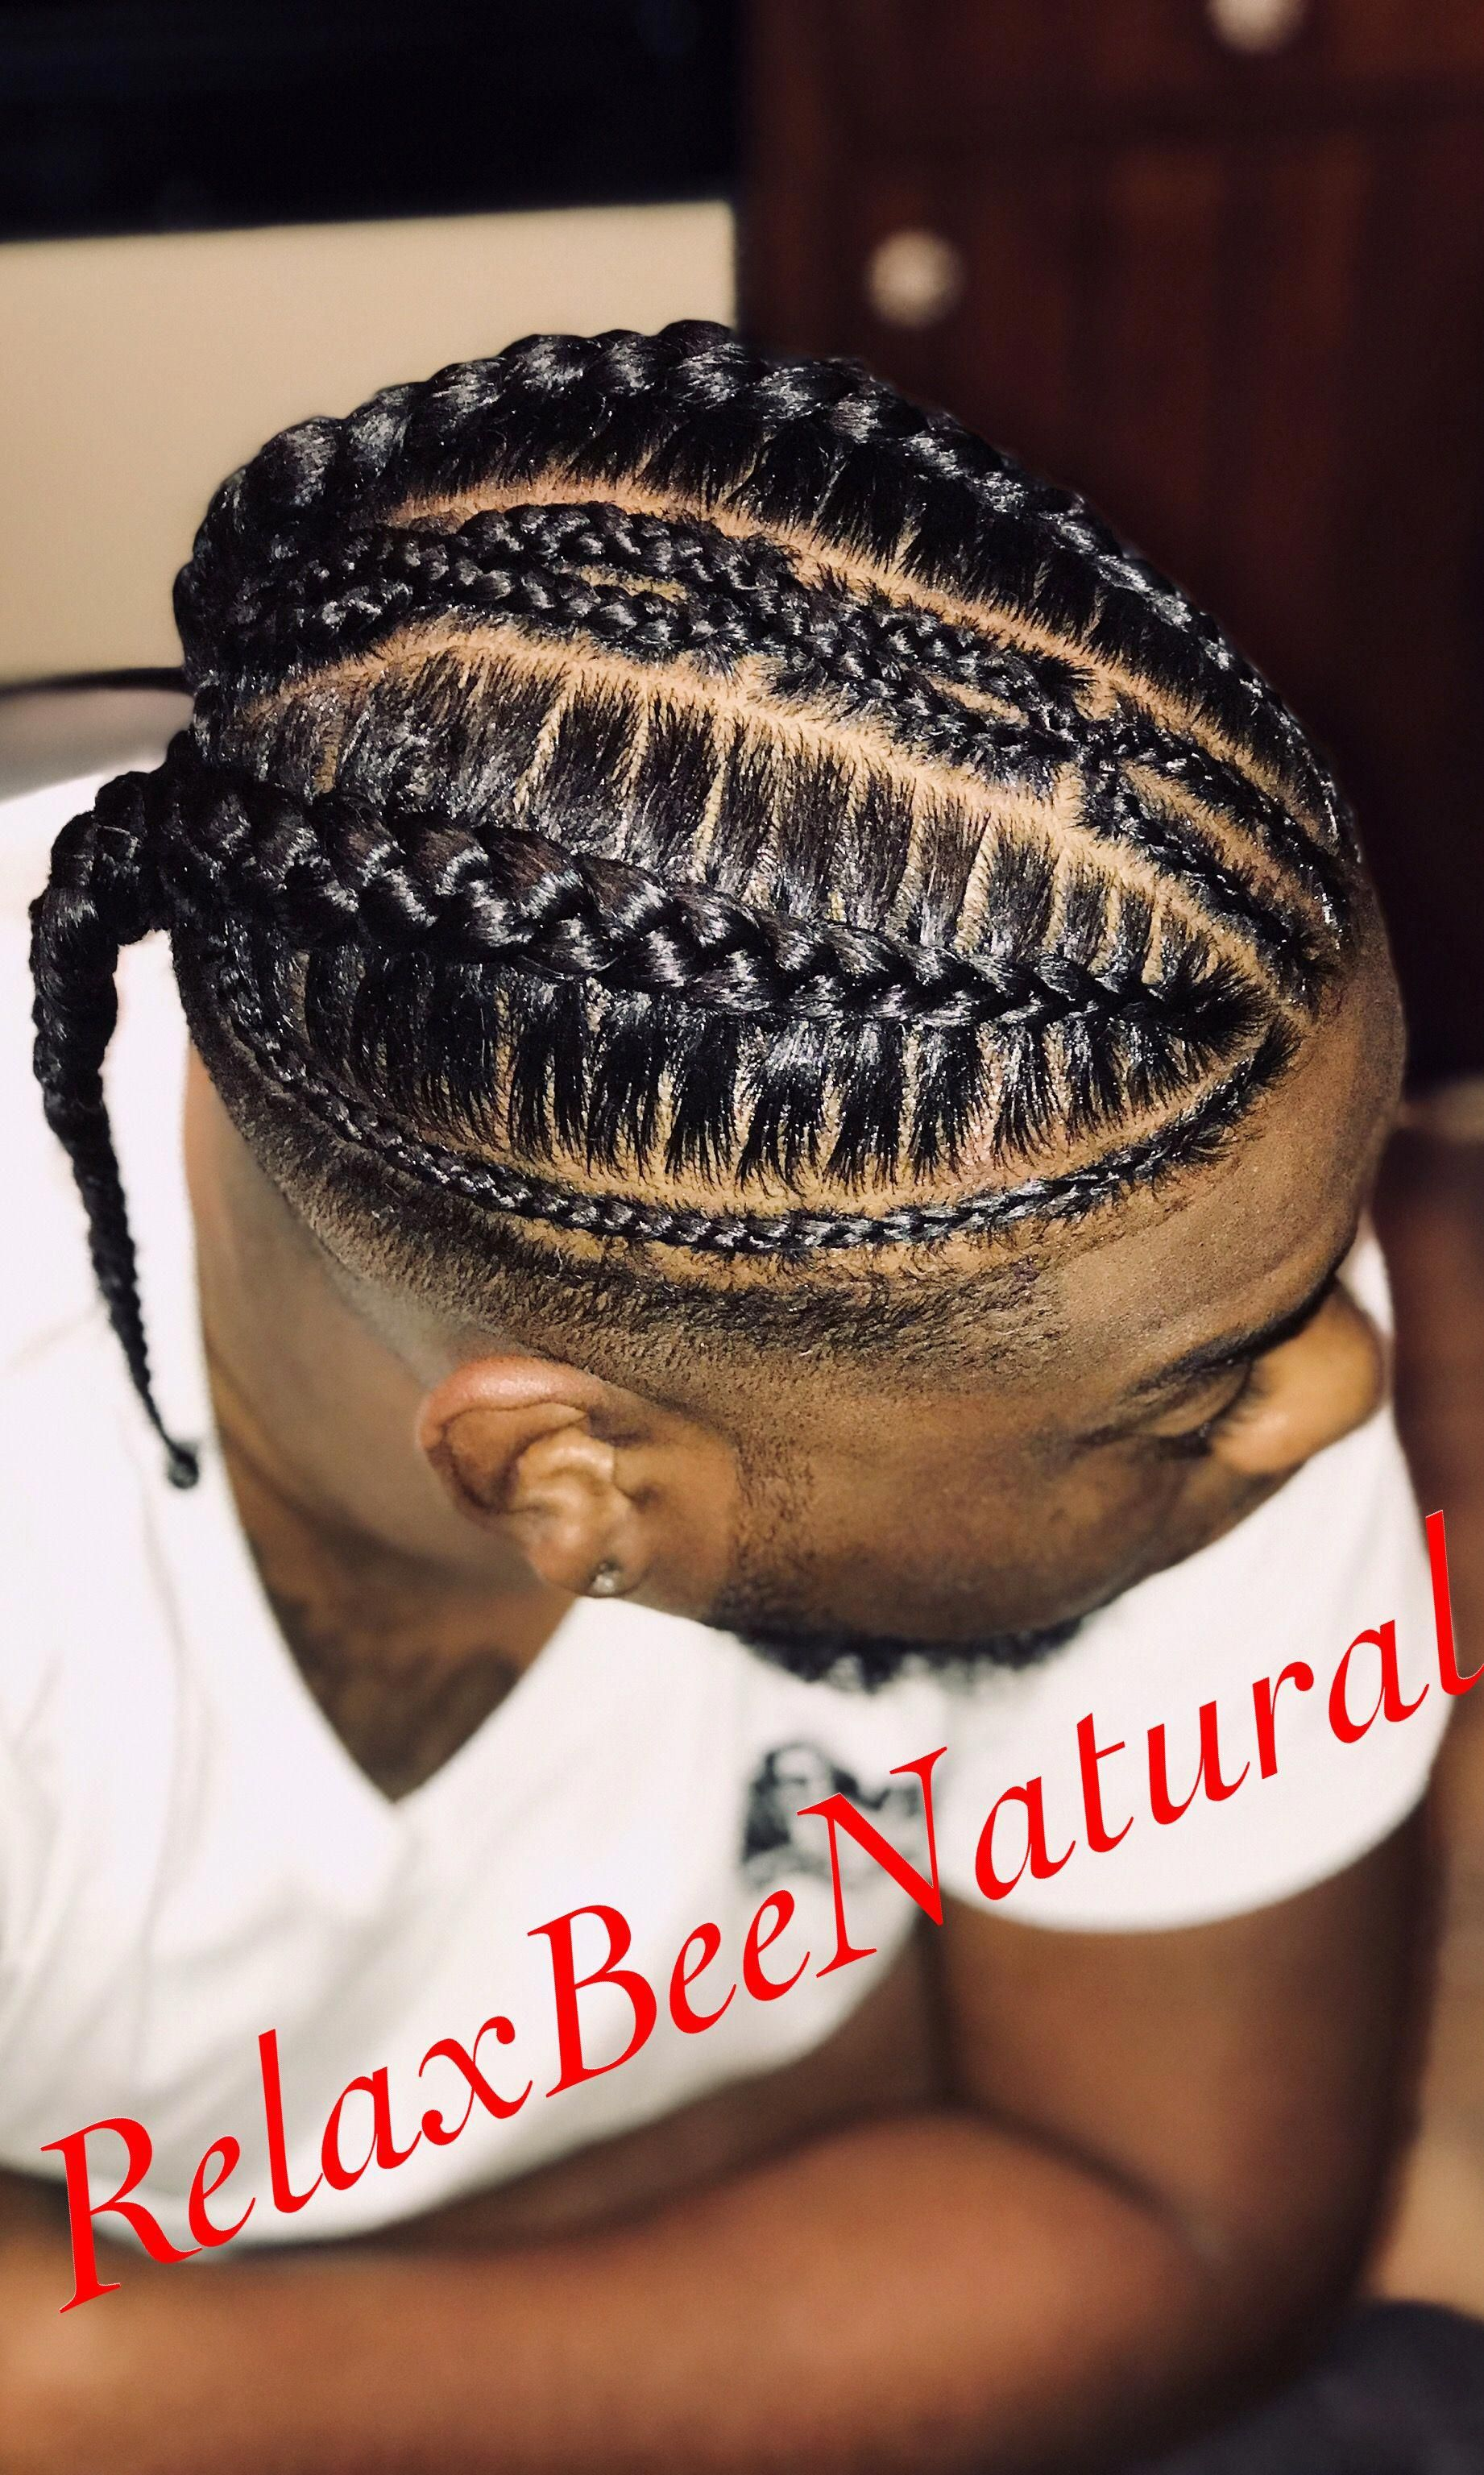 29 Coolest Men's Hair Color Ideas in 2019 (With images) | Mens braids hairstyles, Latest braided ...